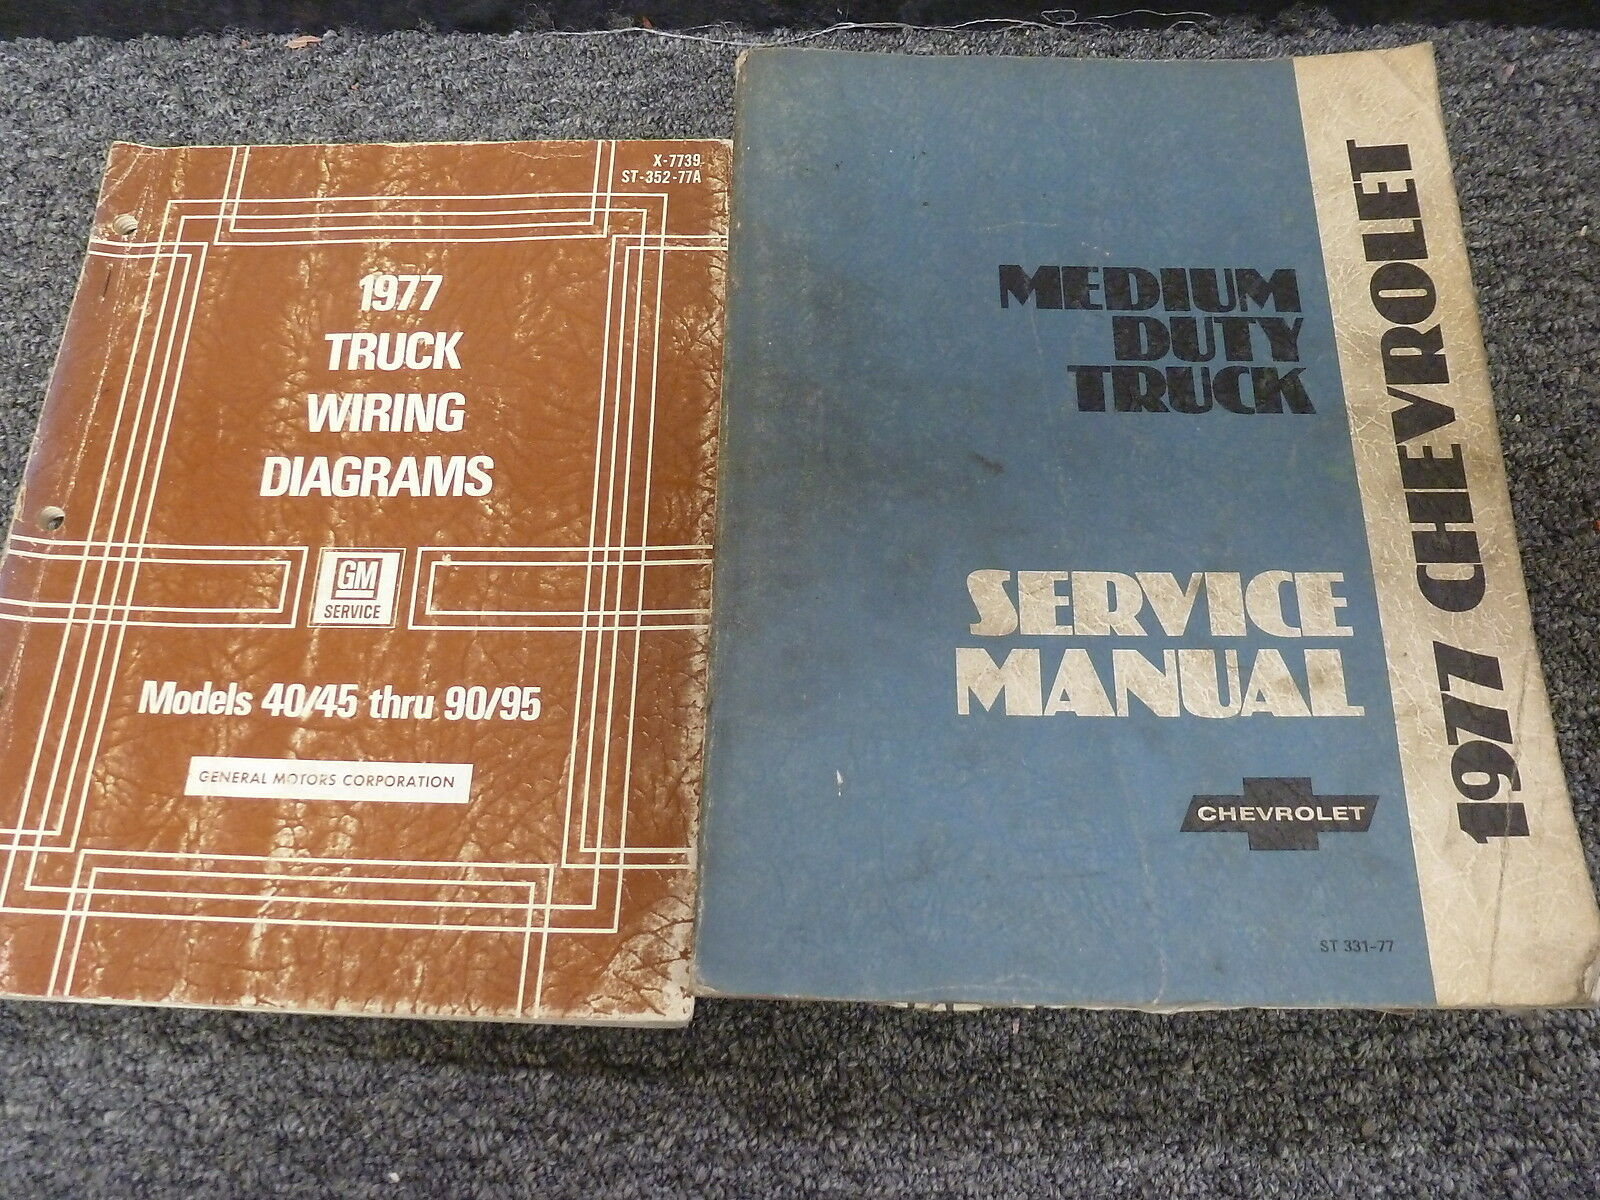 1977 Chevy C40 C50 C60 C70 Truck Wiring Diagrams & Shop Service Repair Manual For Sale